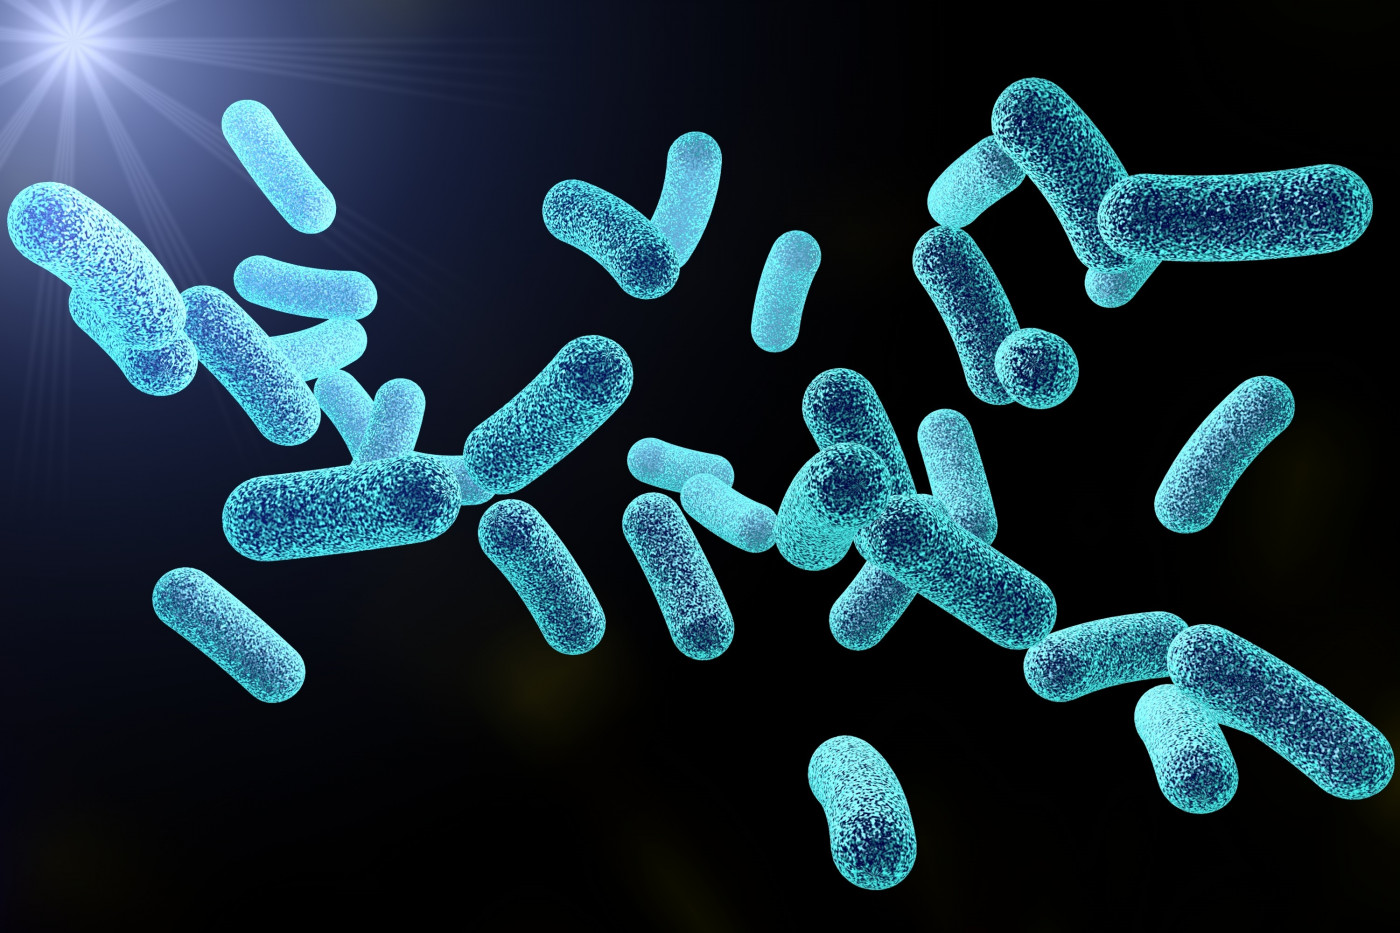 bacteria and biofilms